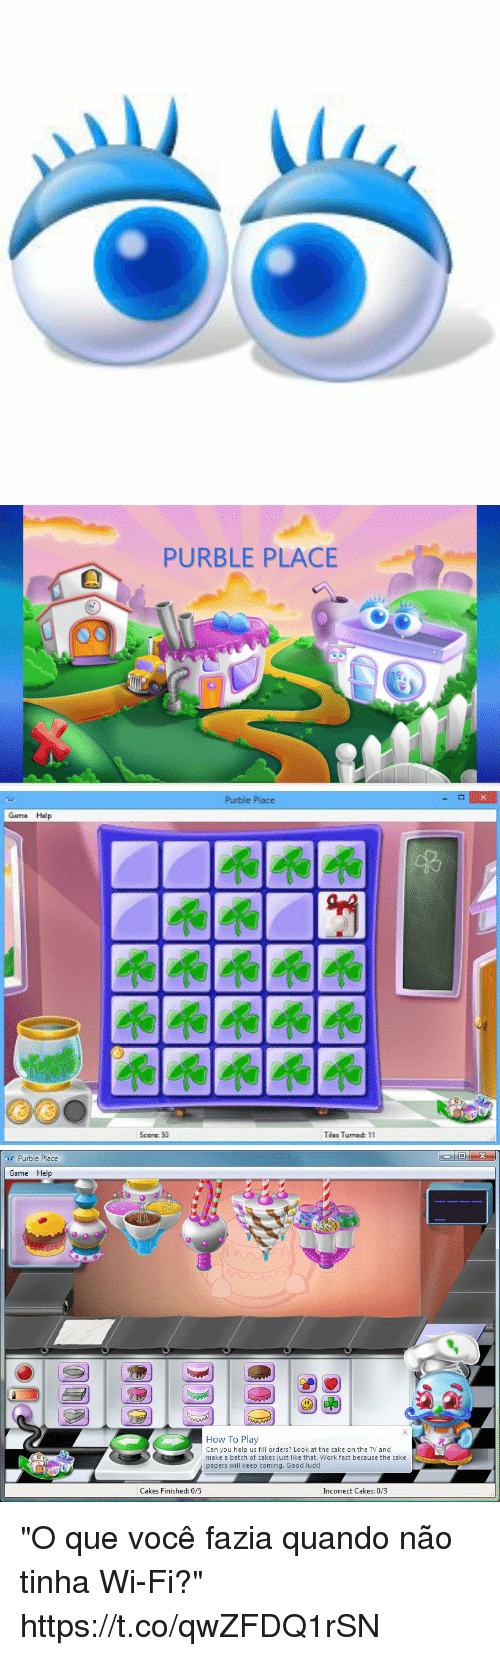 """Work, Cake, and Game: PURBLE PLACE   Purble Place  Turnad: 11   Purble Place  Game Help  How To Play  Can you help us fill orders? Look at the cake on the TV and  make a batch of cakes just like that. Work fast because the cake  papers will keep coming, Good luck!  0  Cakes Finished: 0/5  Incorrect Cakes: 0/3 """"O que você fazia quando não tinha Wi-Fi?"""" https://t.co/qwZFDQ1rSN"""